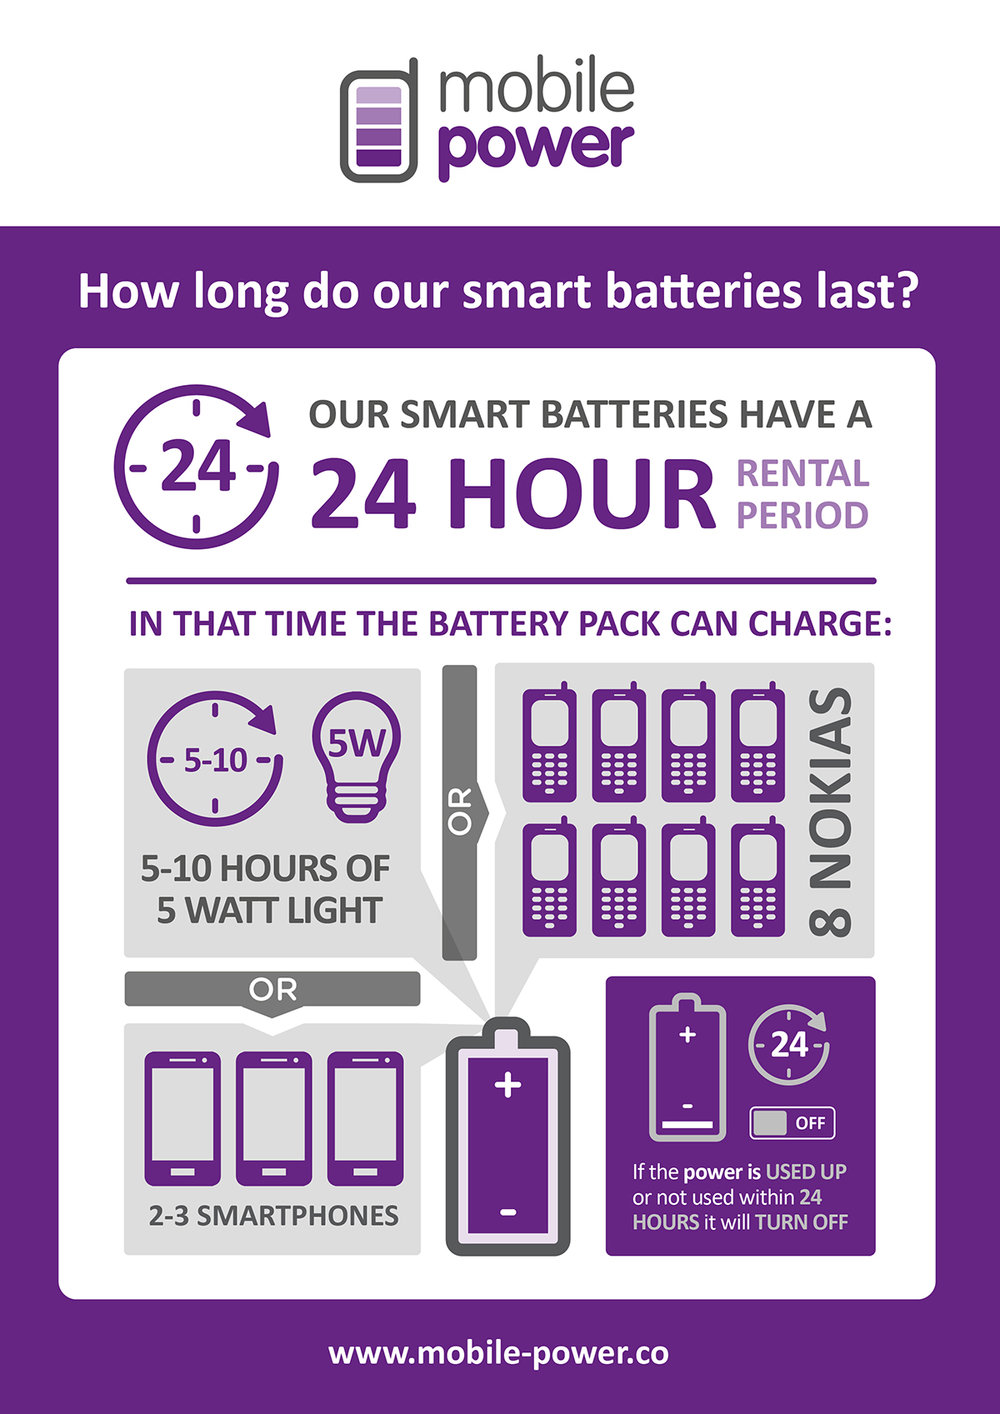 mobile power infographic